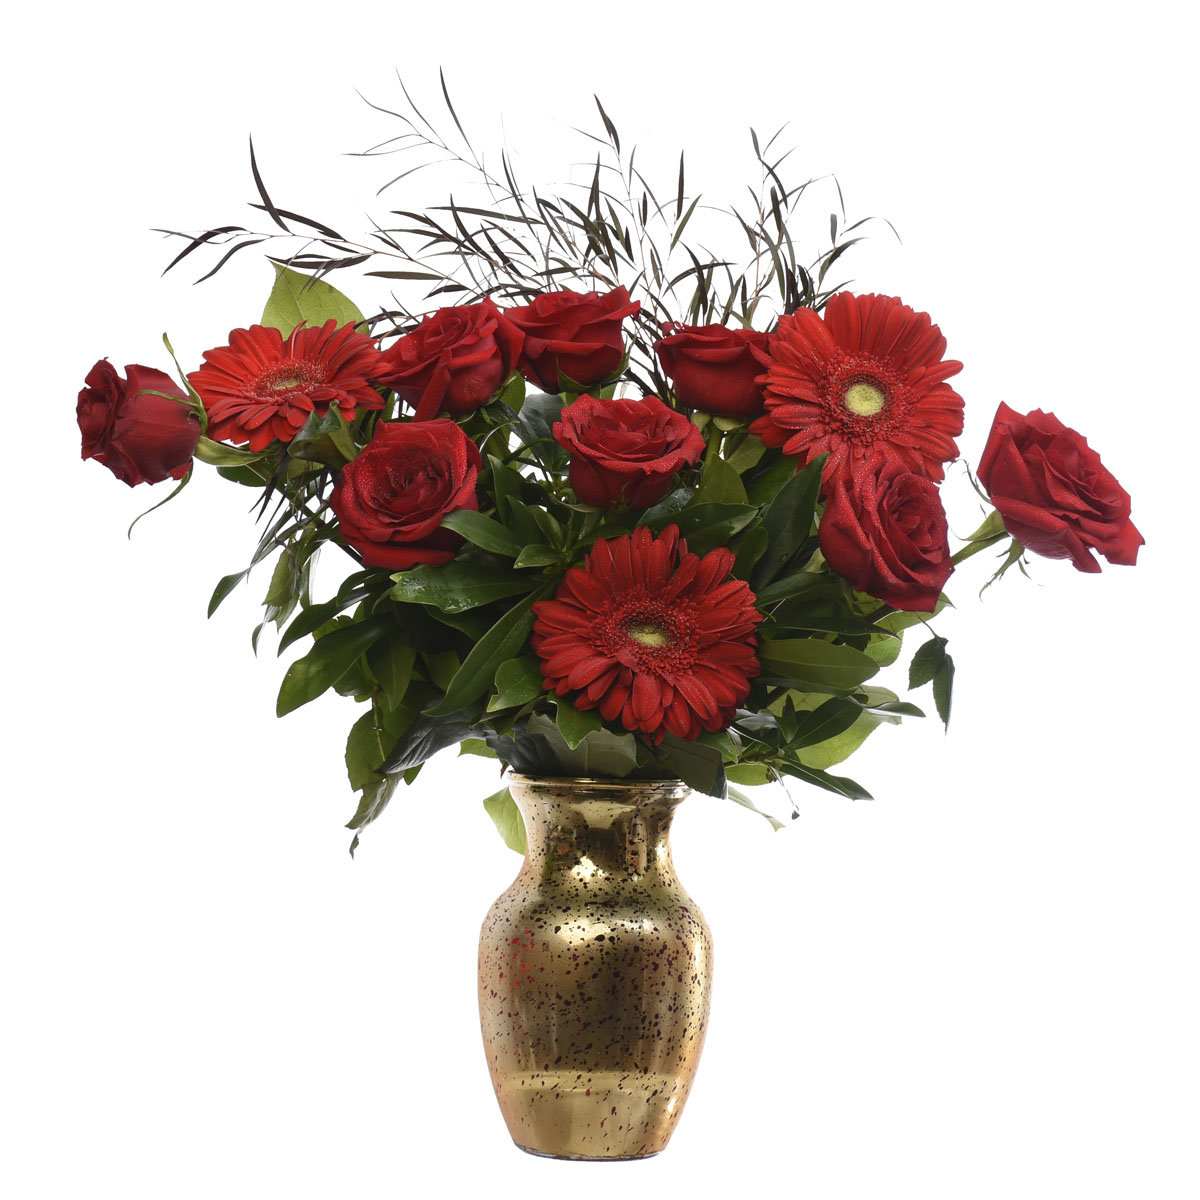 Golden Vase filled with red roses and red gerbs.